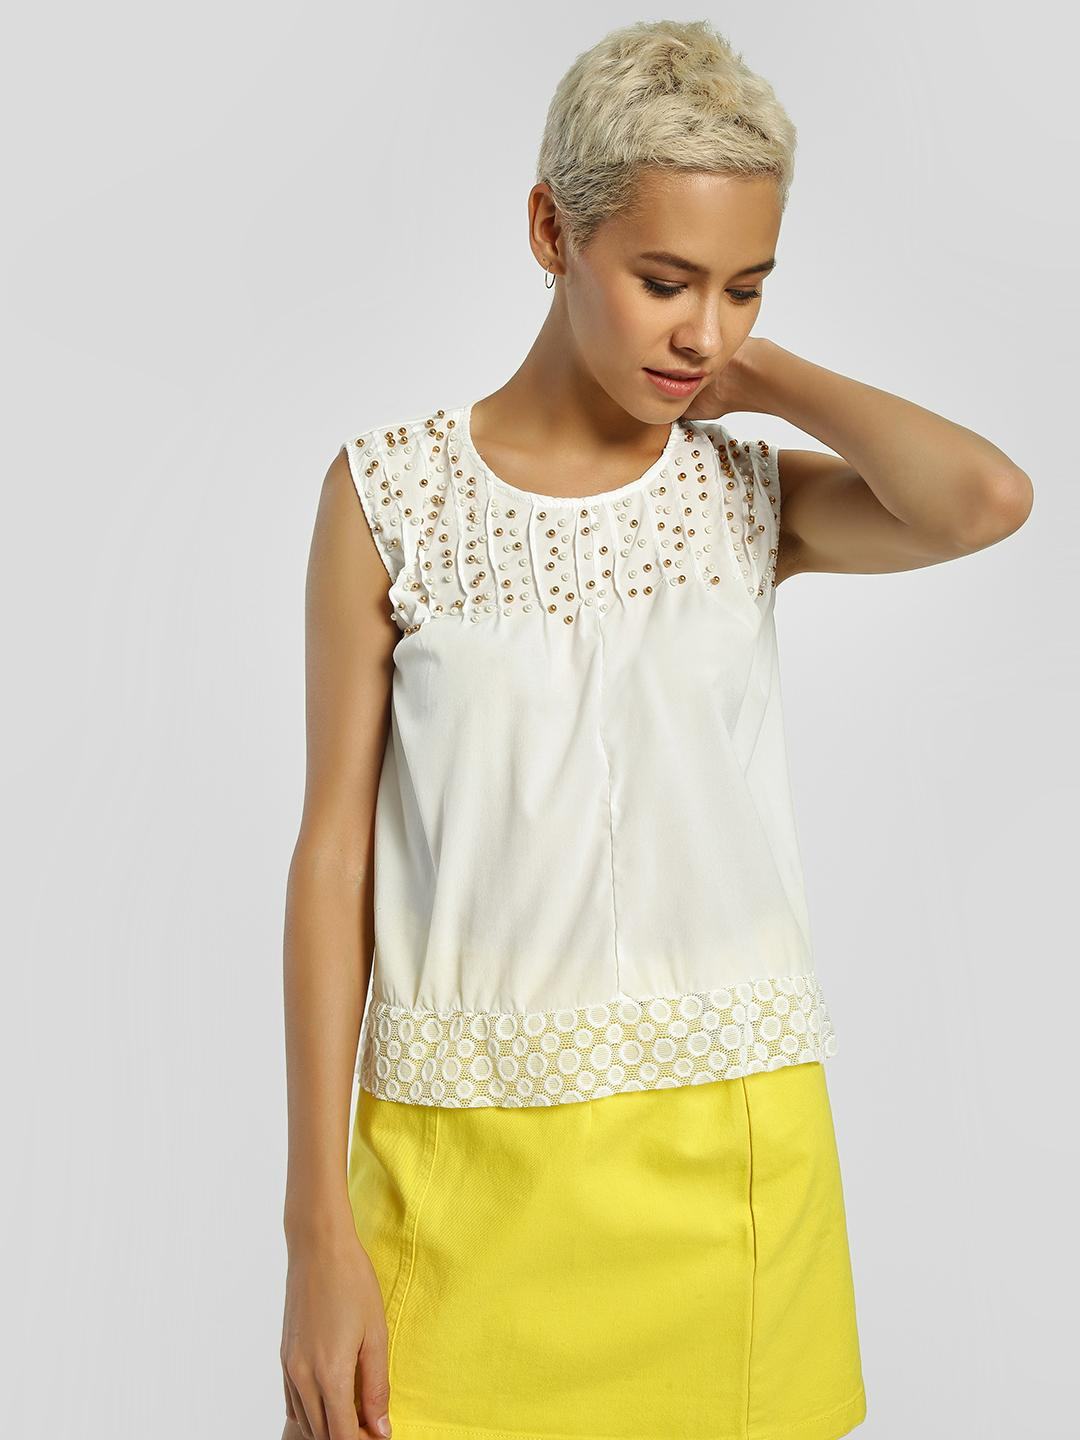 Privy League White Pearl Embellished Sleeveless Blouse 1